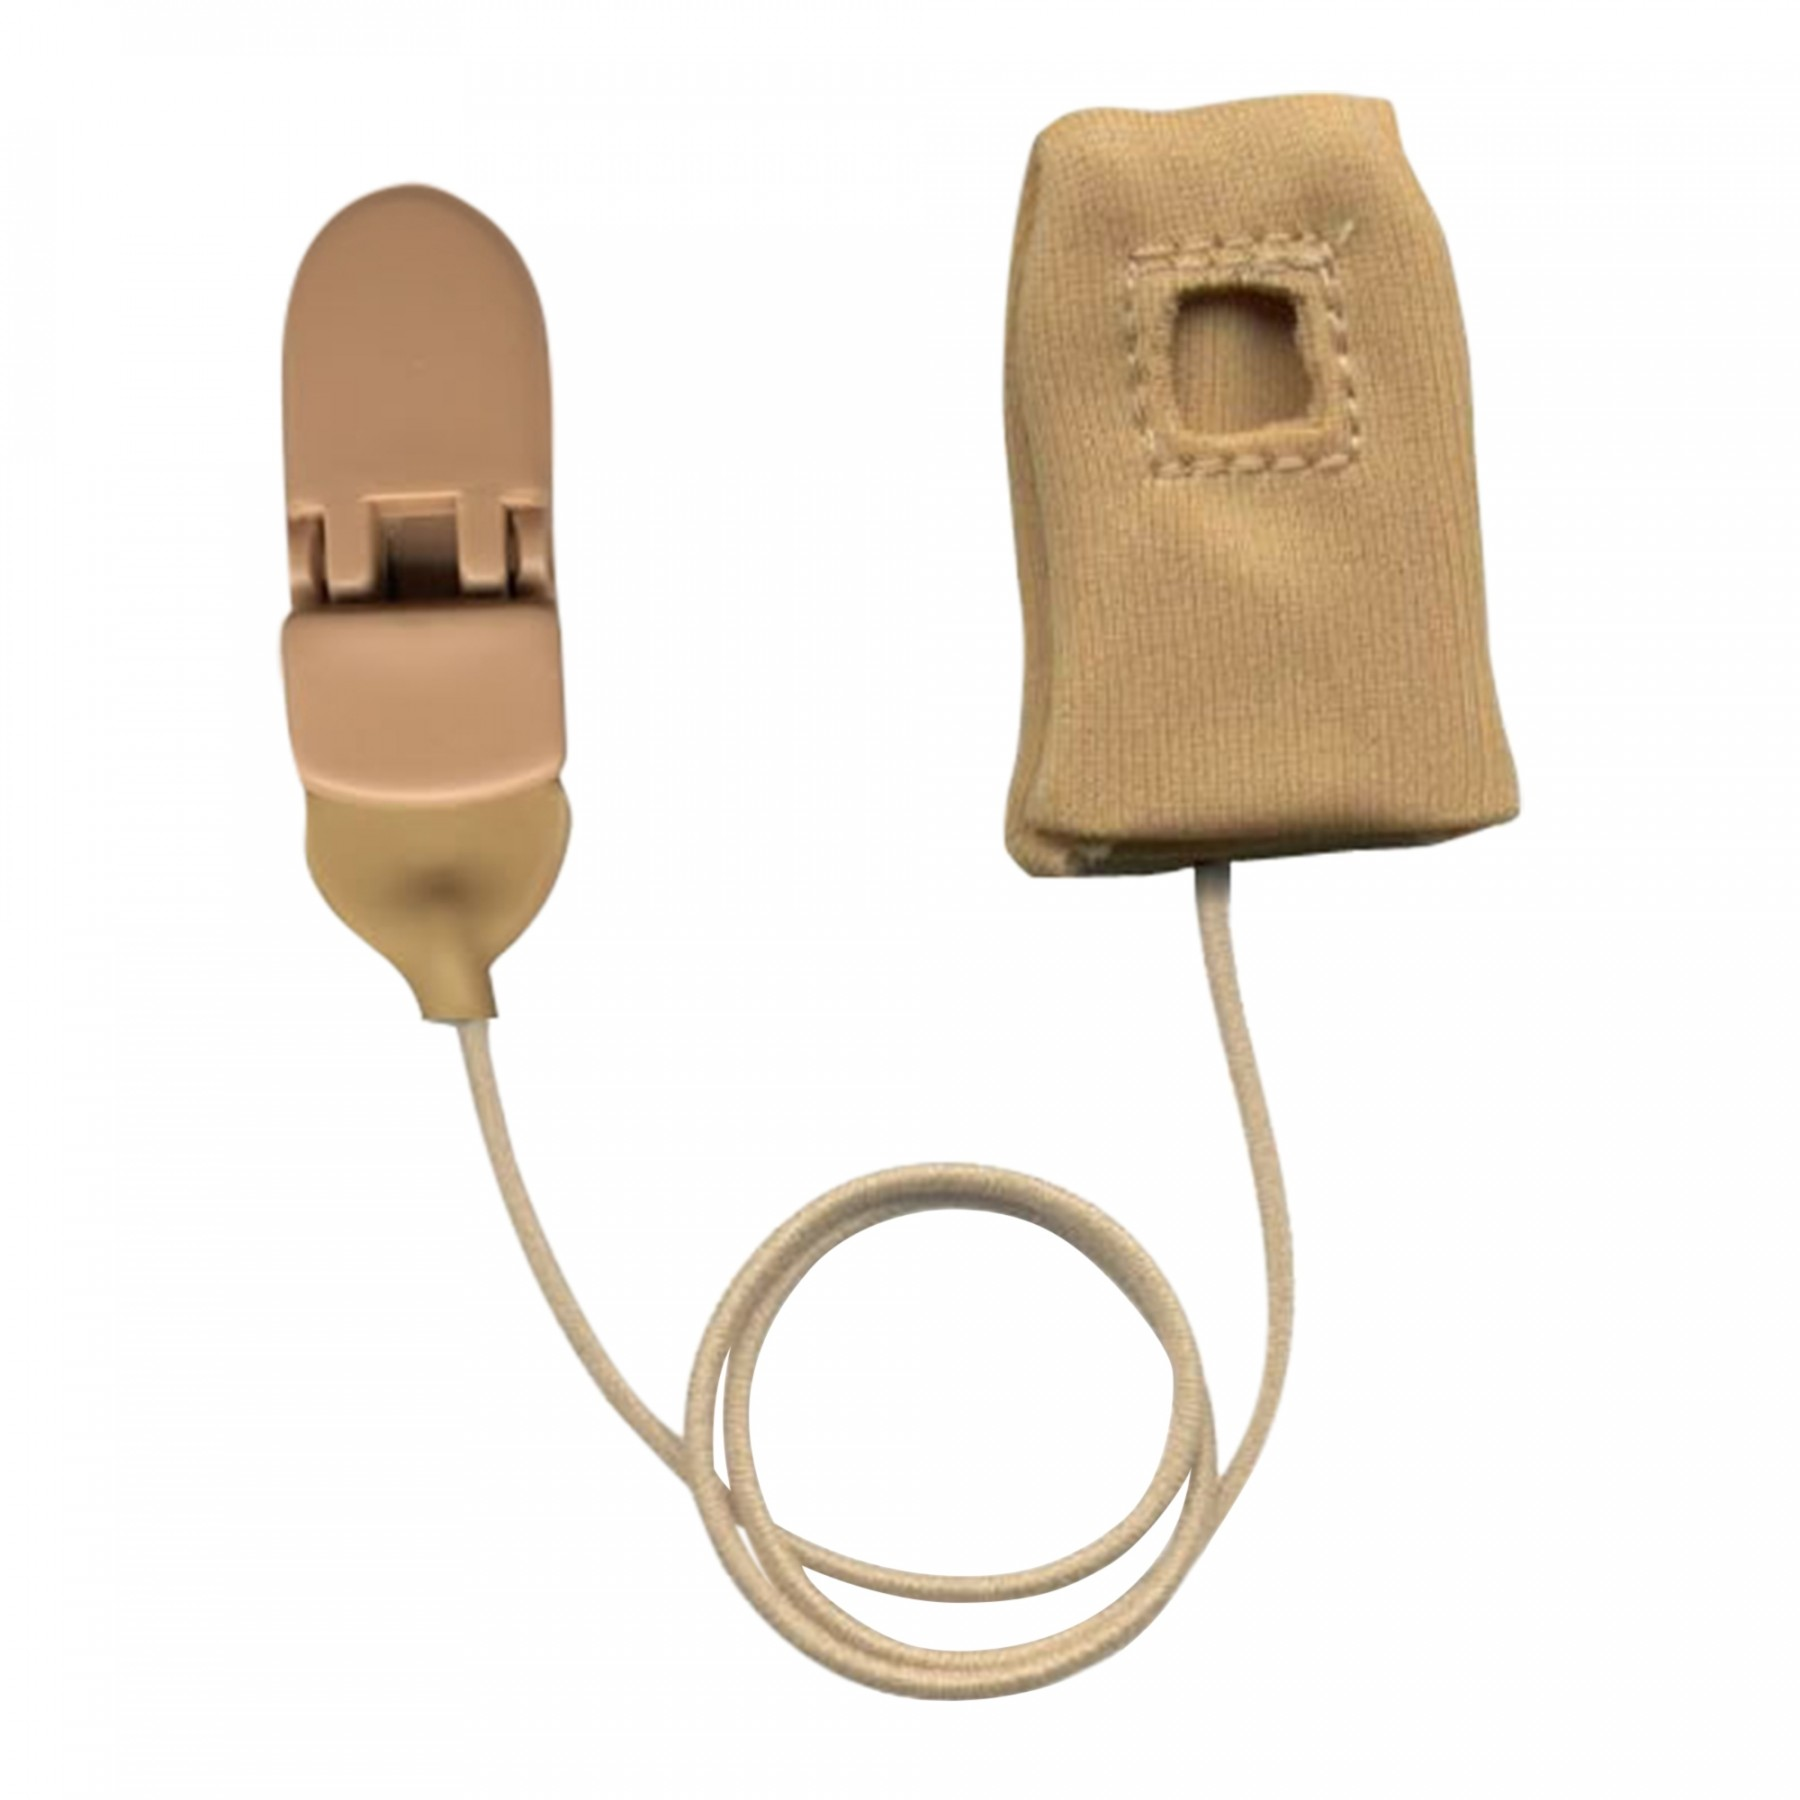 Baha, Monaural with Cord, Beige Inside View